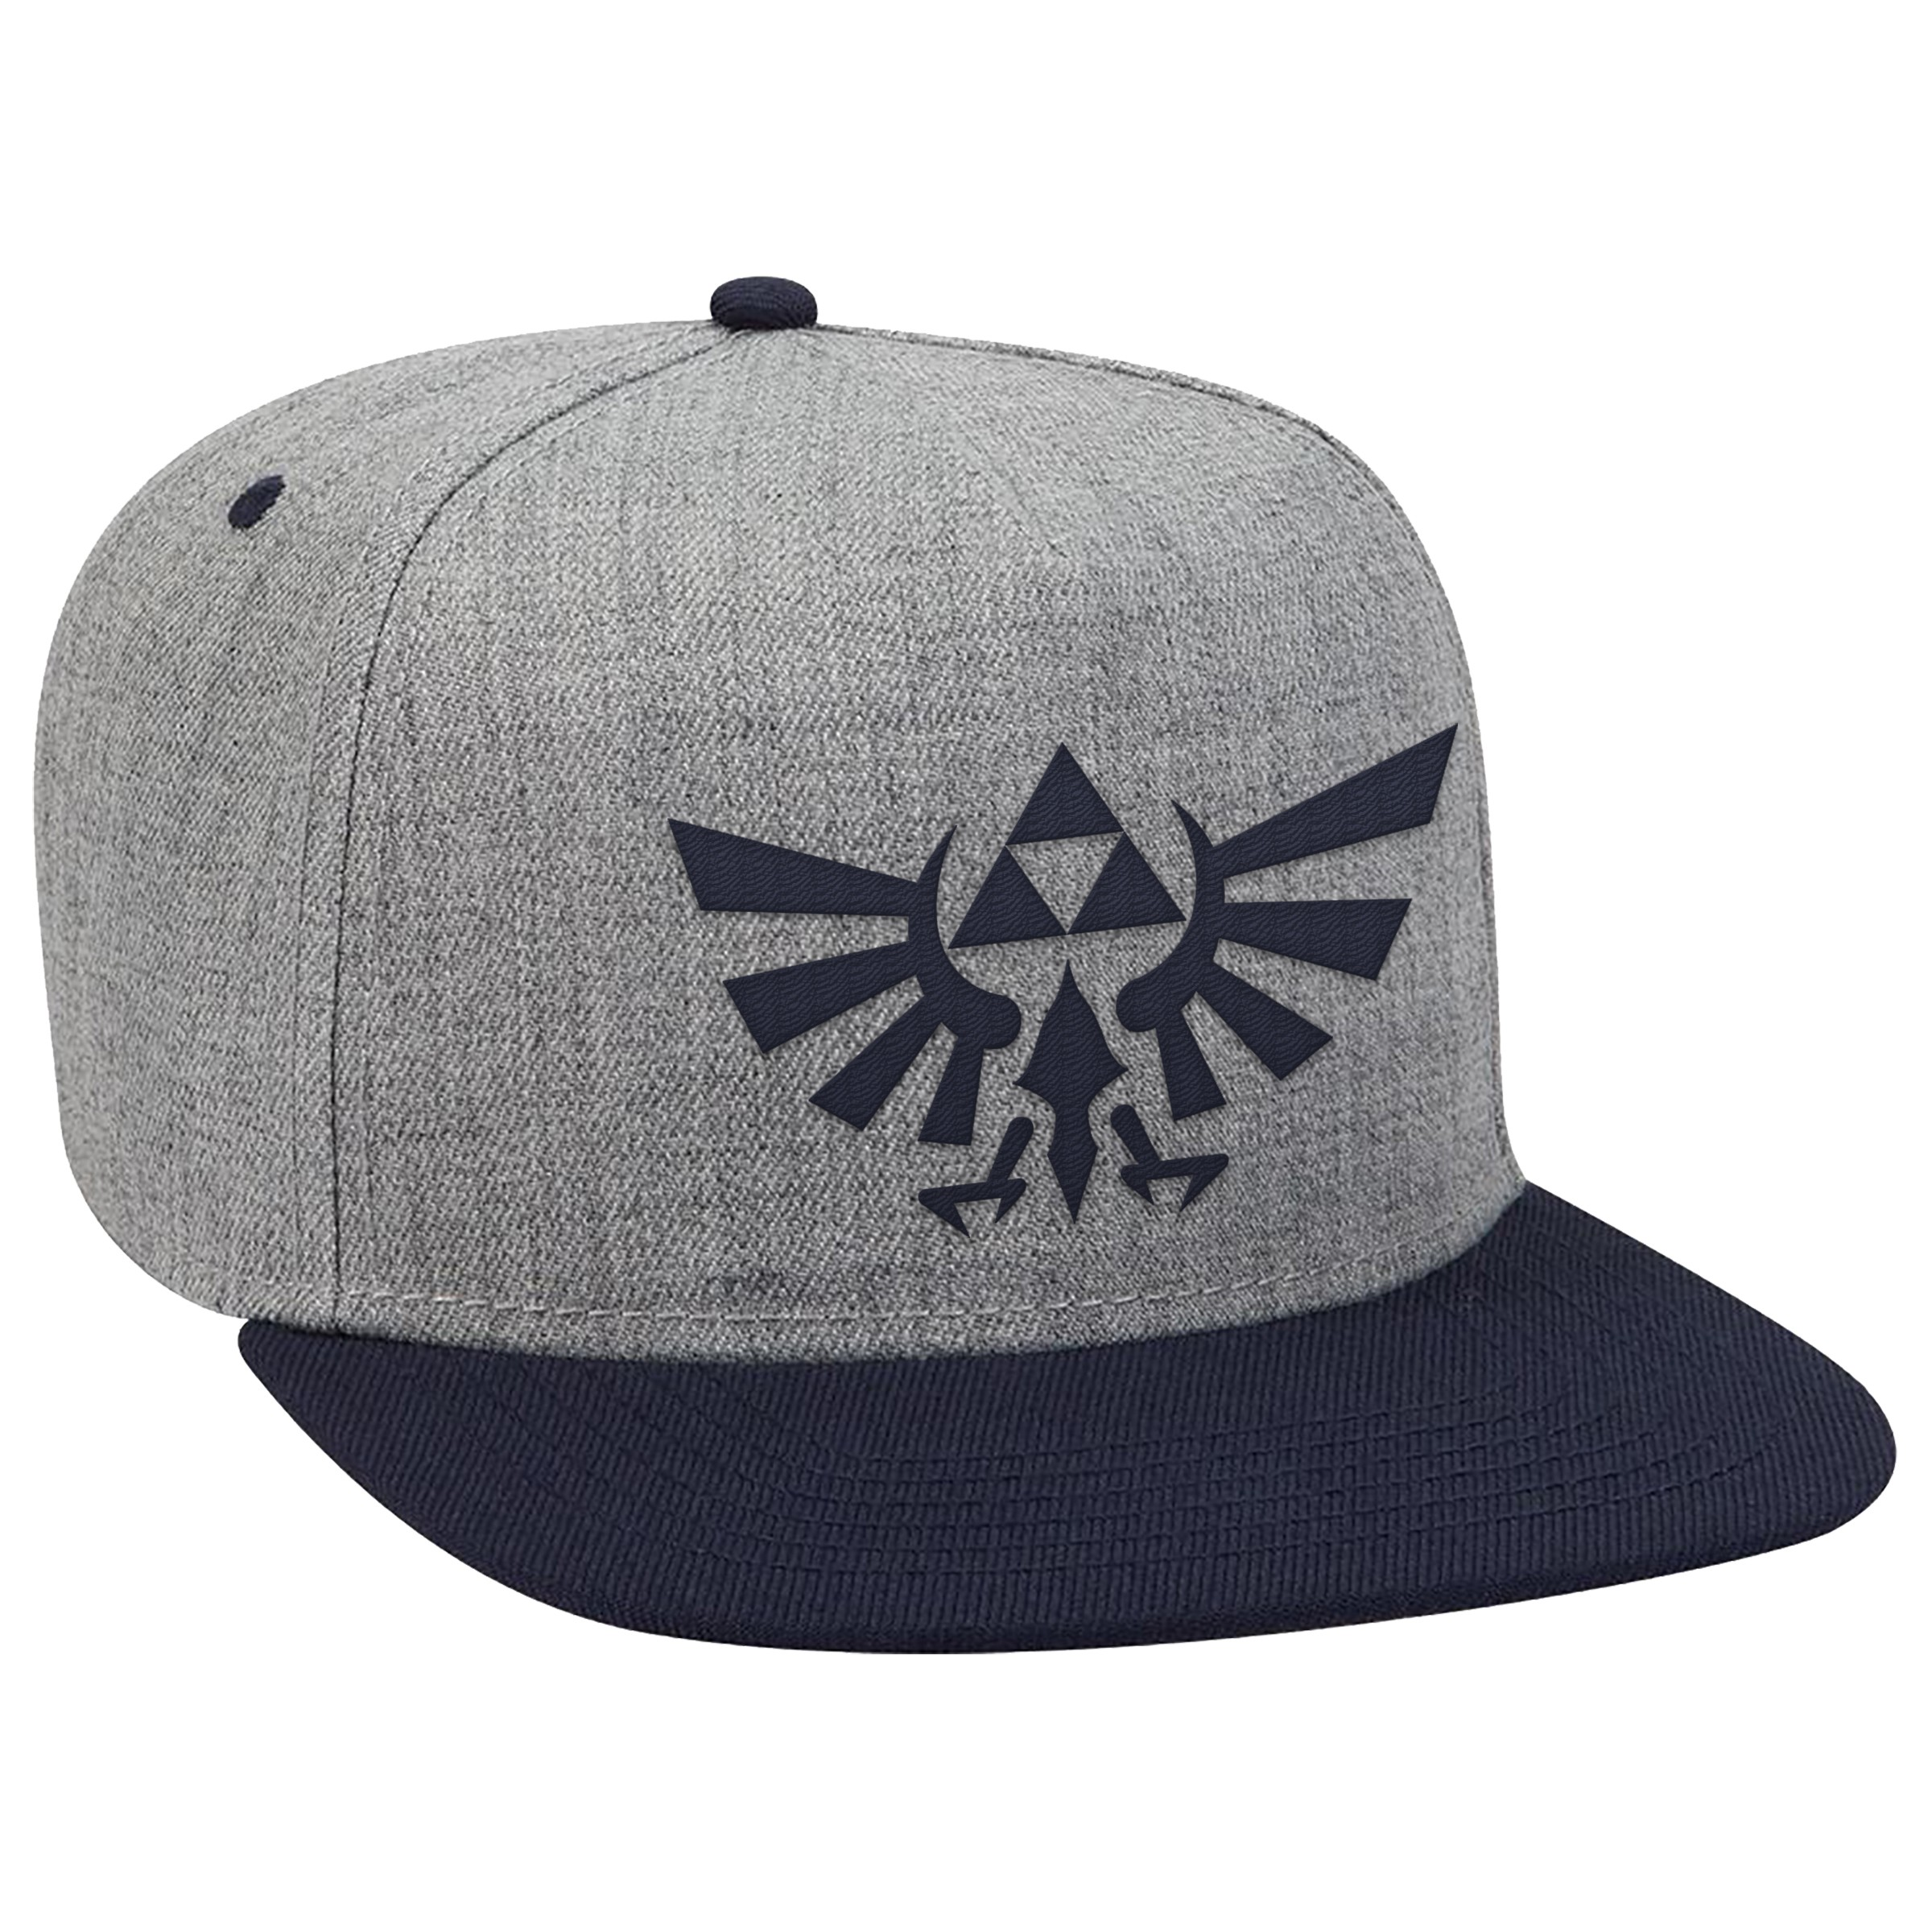 "The Legend of Zelda™ ""Navy Hyrule Crest"" Flat Bill Hat - Officially Licensed by Nintendo"